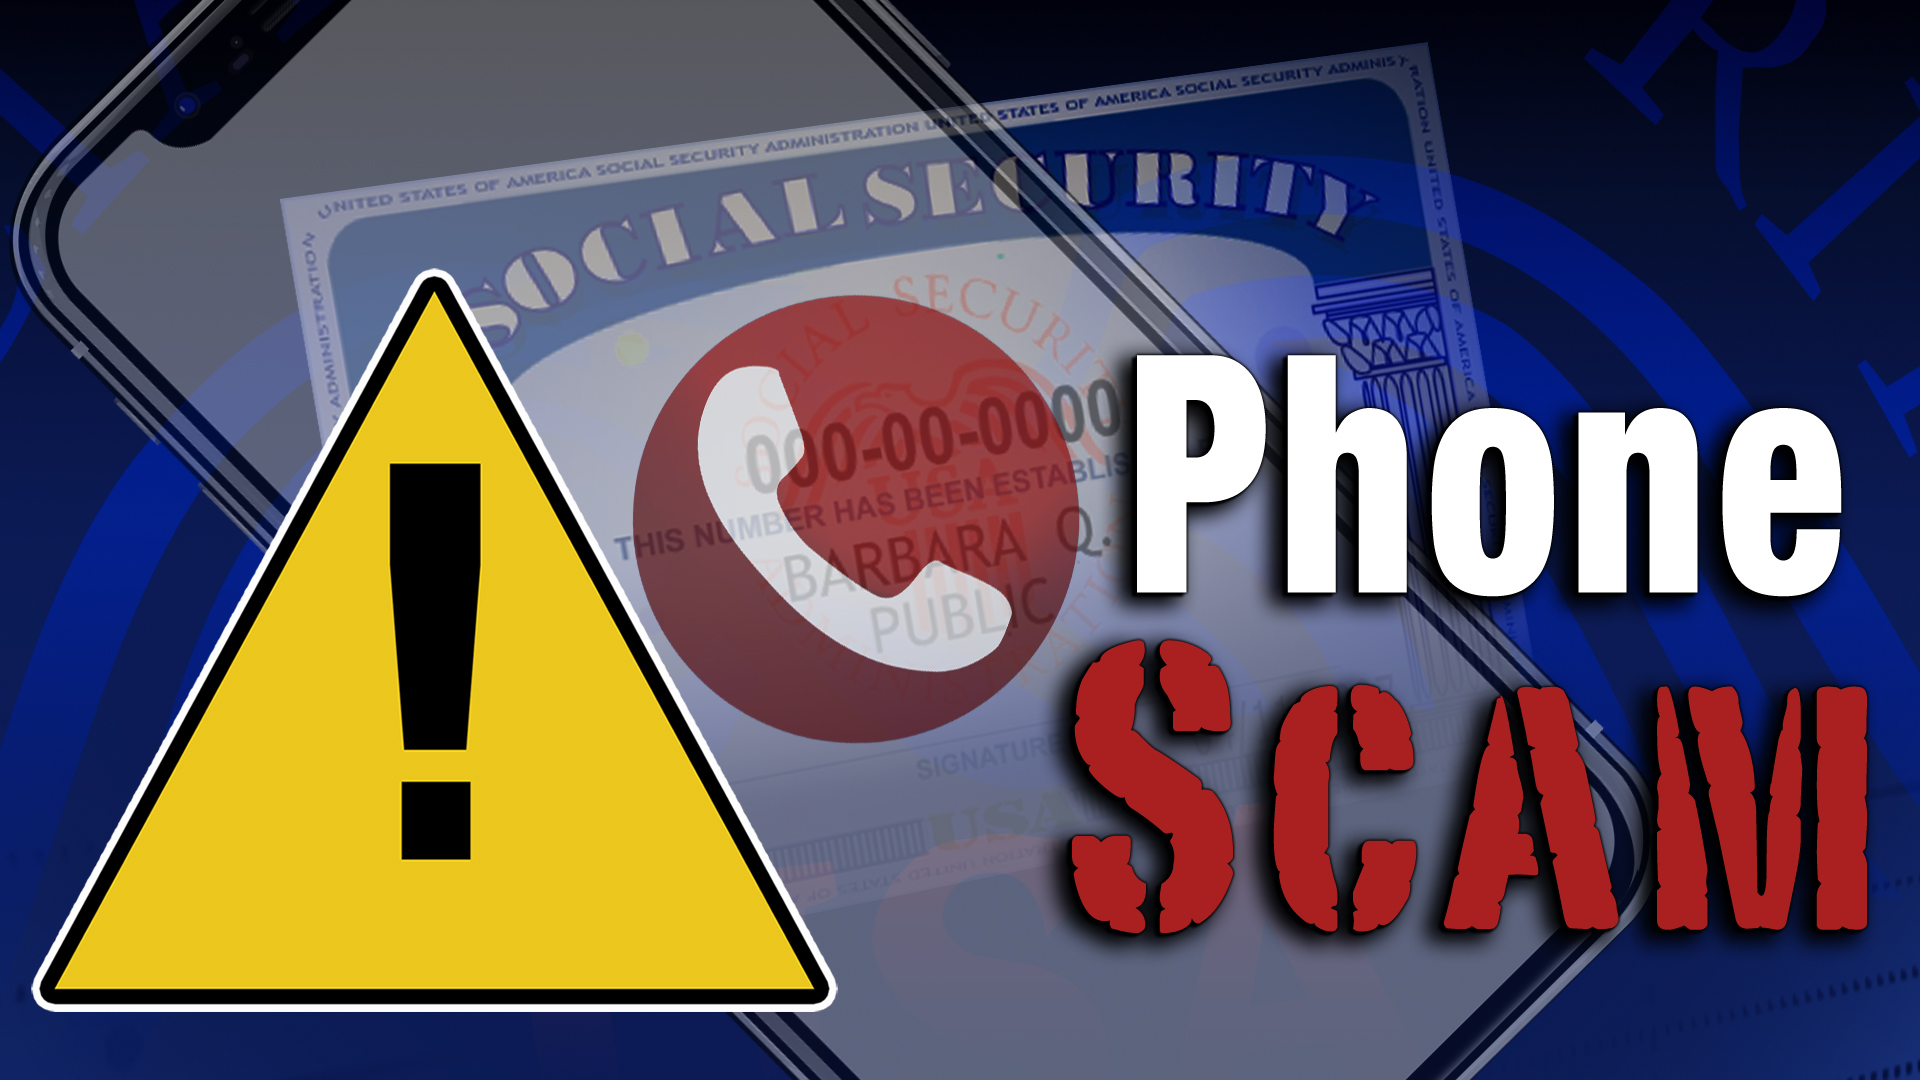 Social_Security_Phone_Scam_1560031245645-159665.jpg